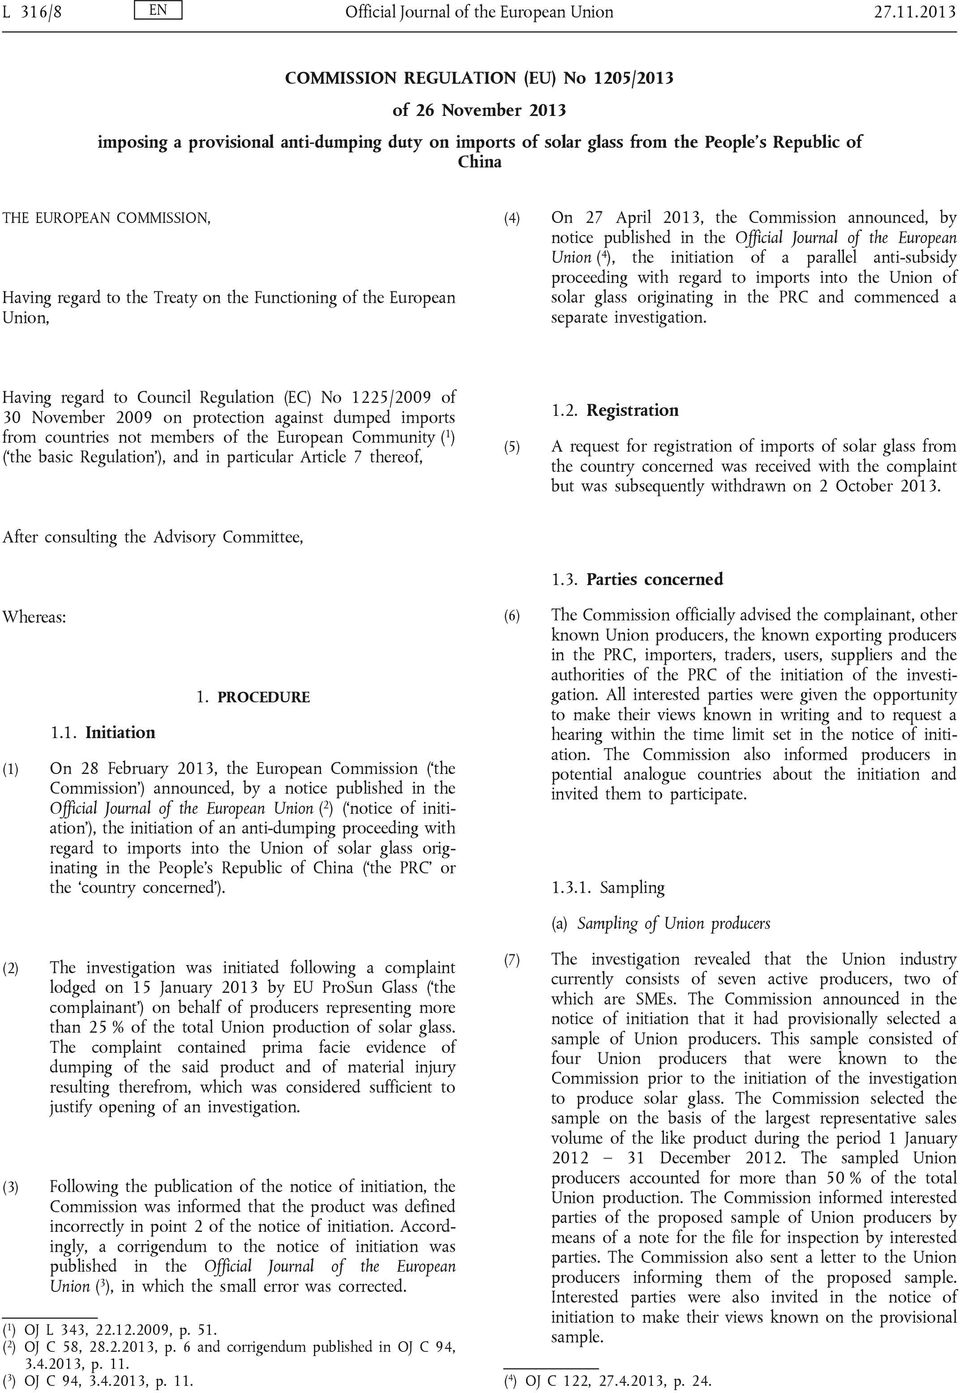 regard to the Treaty on the Functioning of the European Union, (4) On 27 April 2013, the Commission announced, by notice published in the Official Journal of the European Union ( 4 ), the initiation